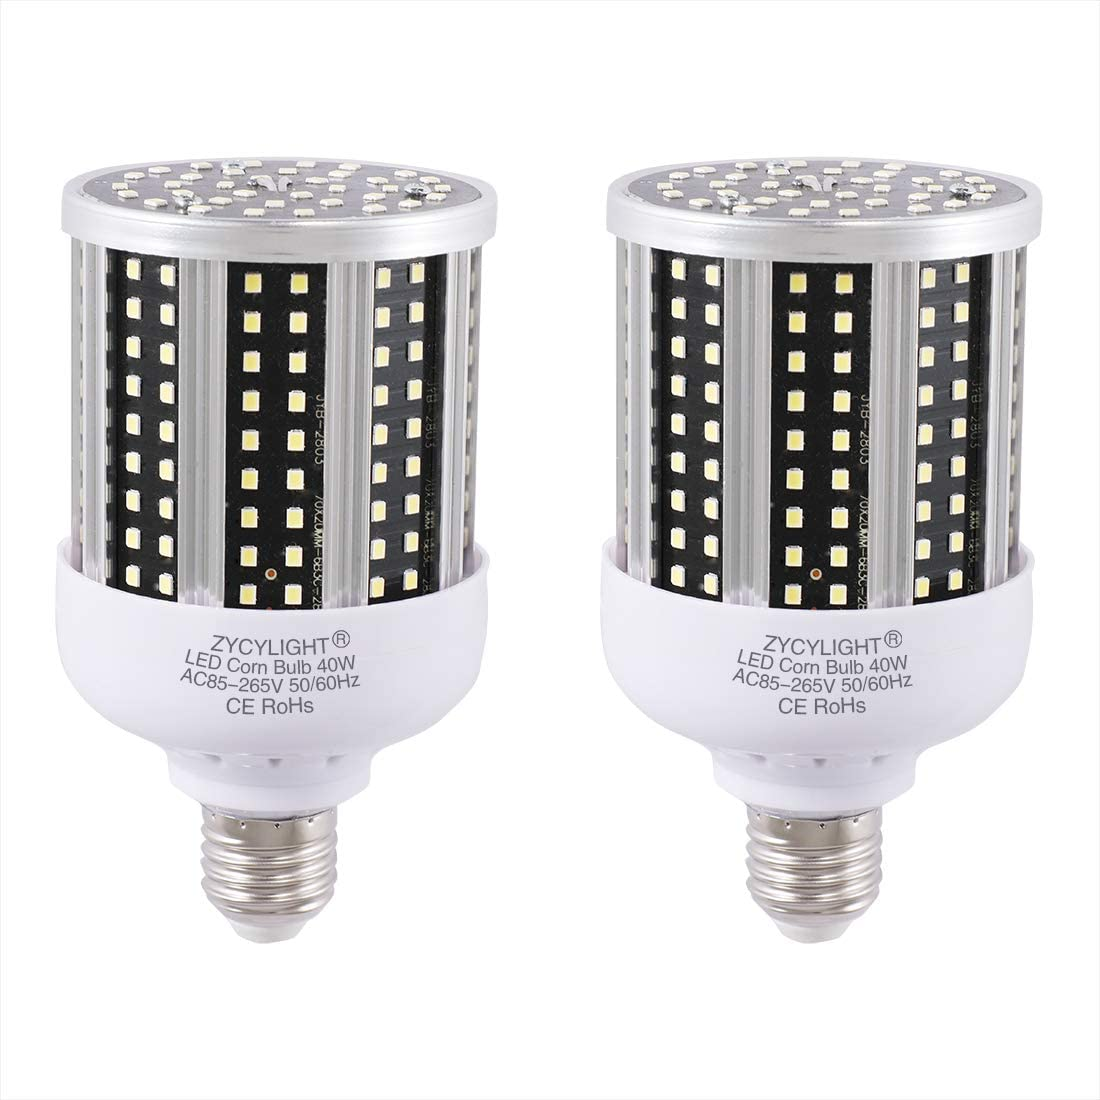 500W Equivalent 2 Pack ,7500 Lumen,6000K- 6500K,Cool Daylight LED Street and Area Light,E39 Mogul Base,for Outdoor Indoor Garage Warehouse High Bay Barn Backyard and More LED Corn Bulb 80 Watt